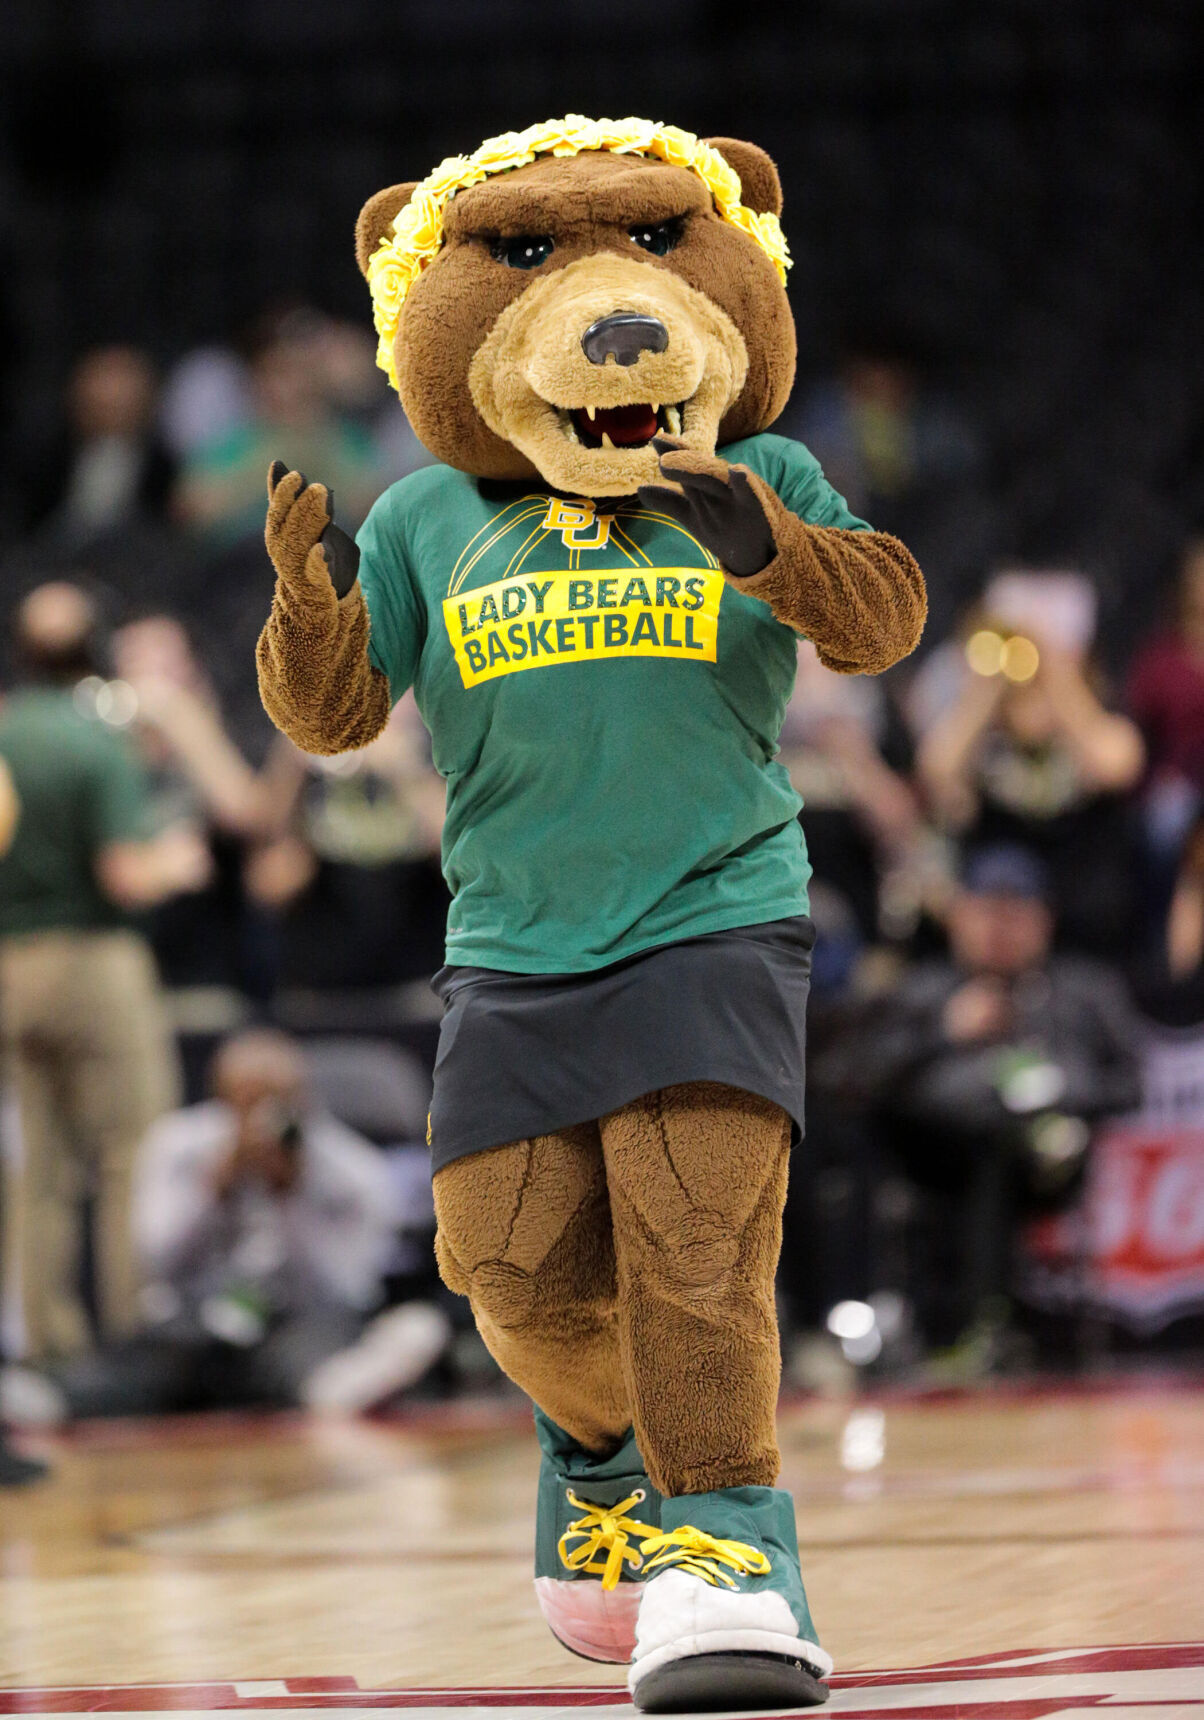 The Baylor women's basketball team is dropping 'Lady' from its name and will be known as the Bears 6